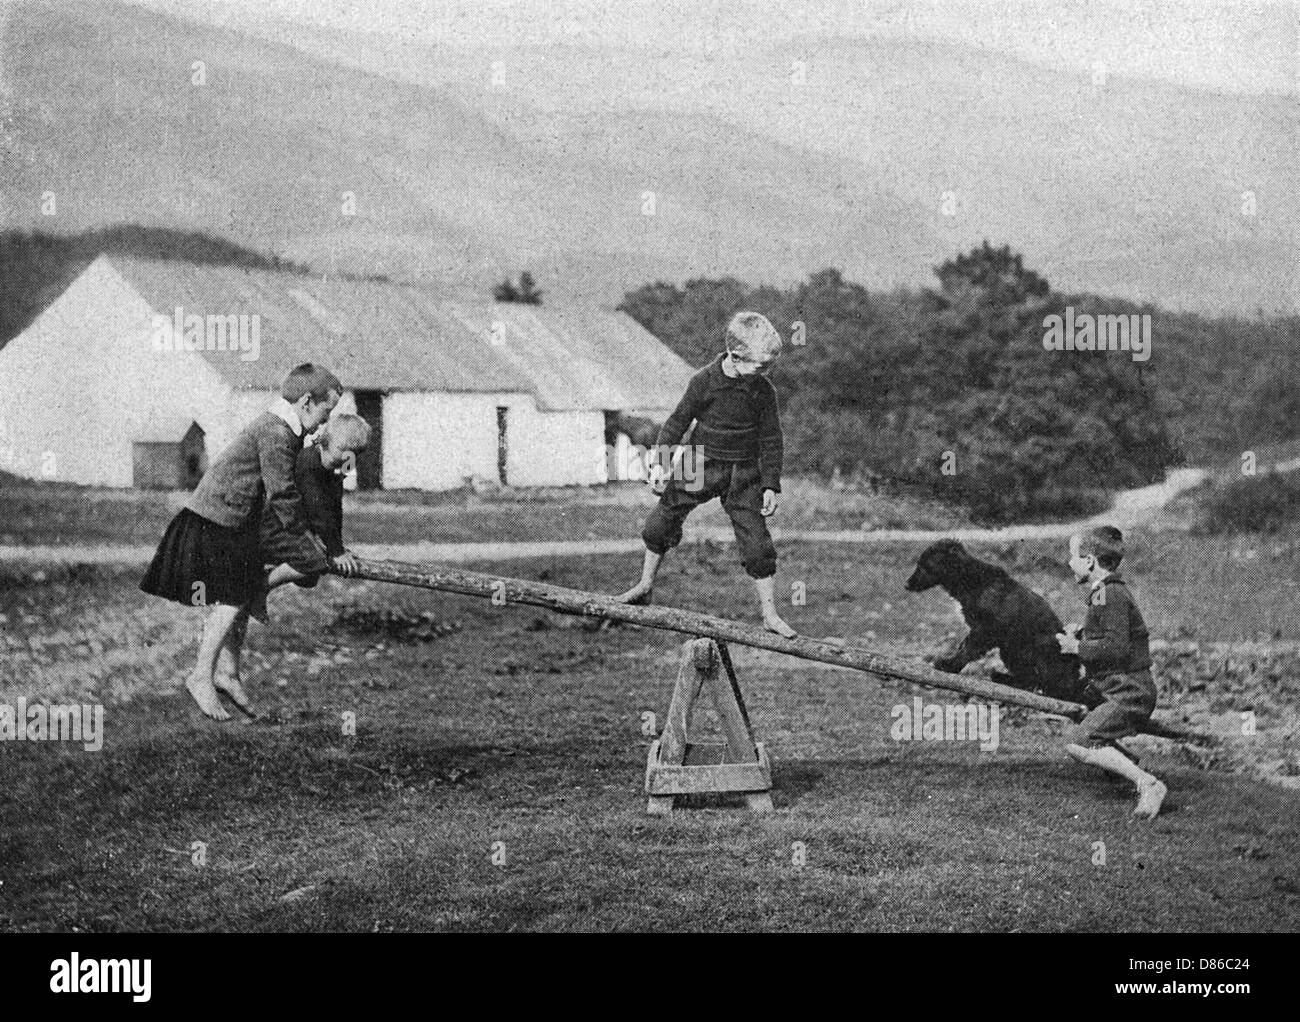 Children And A Dog Play On A Seesaw - Stock Image